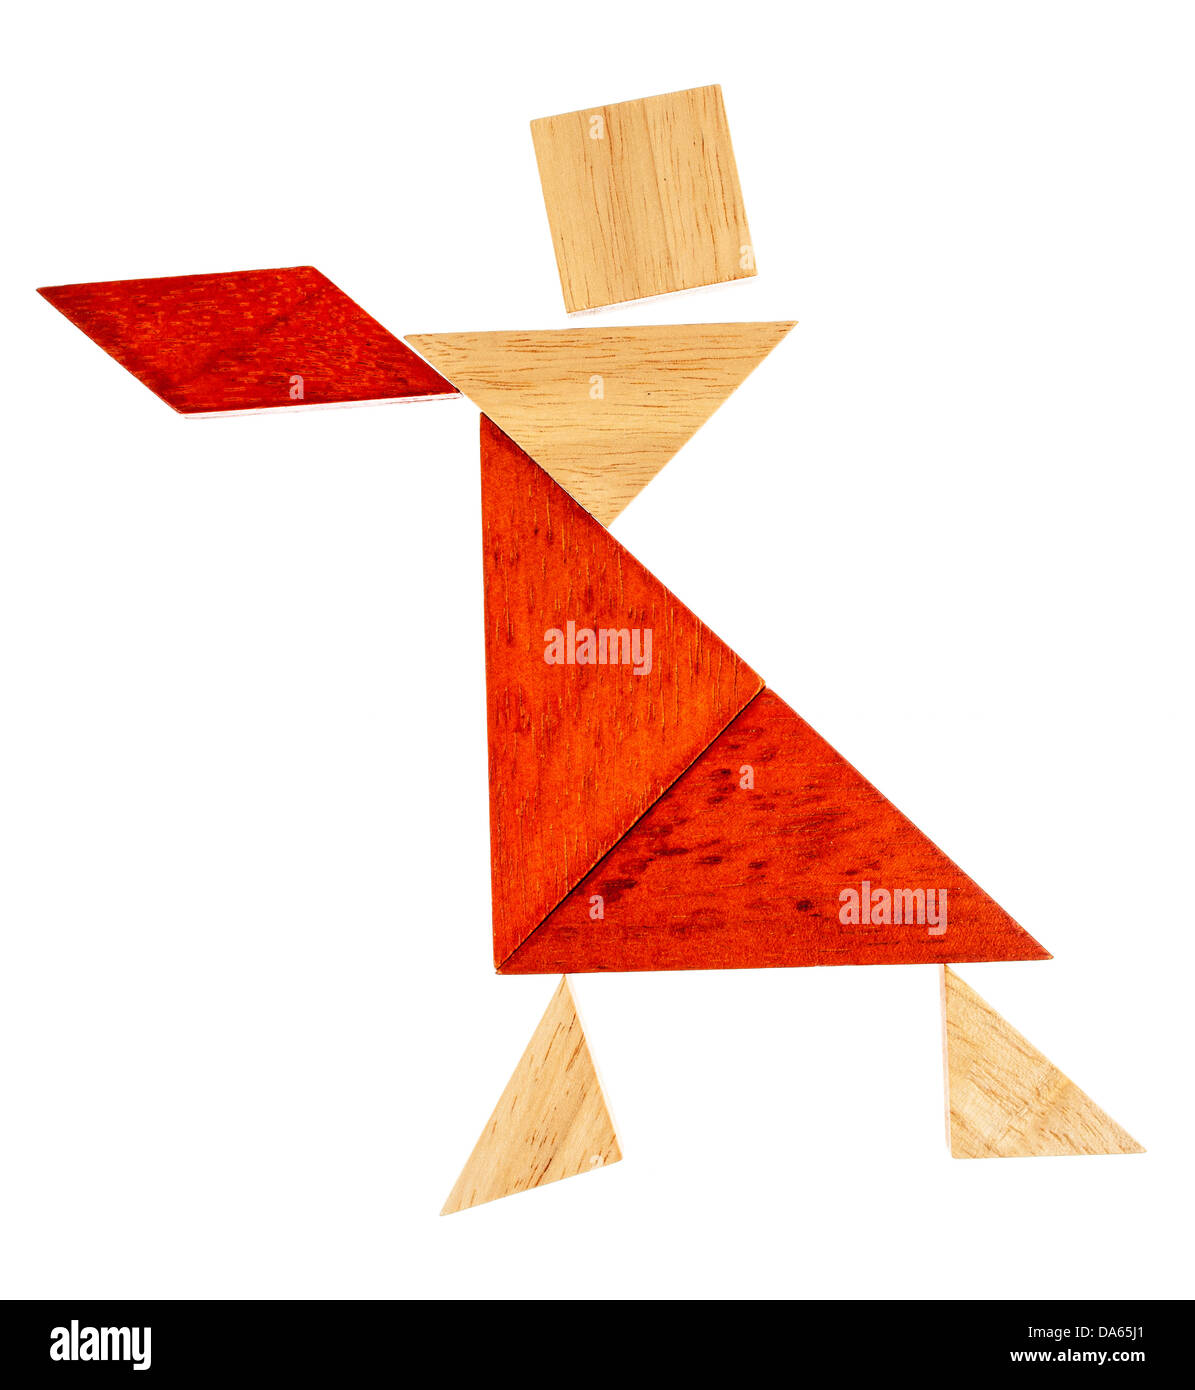 abstract figure of a female dancer or waitress built from seven tangram wooden pieces, a traditional Chinese puzzle - Stock Image